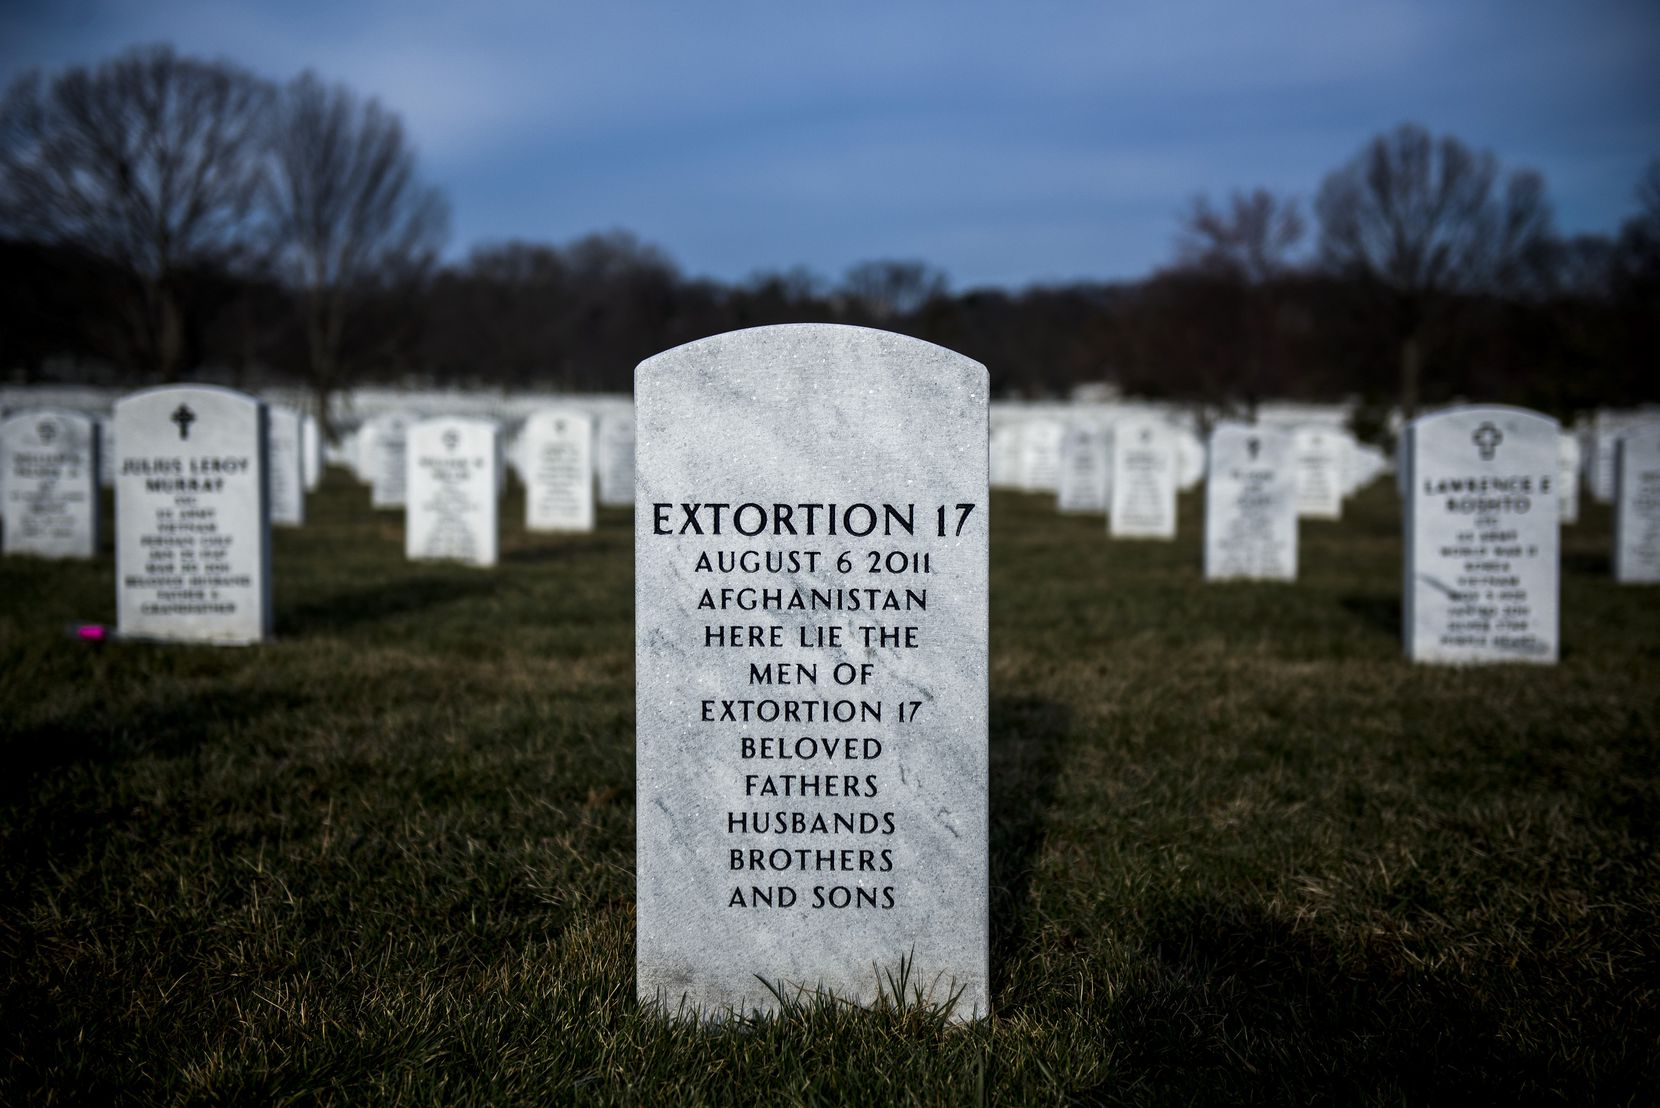 A grave for remains of Navy SEALs aboard a helicopter with the call sign Extortion 17, which crashed in 2011 in Afghanistan, at Arlington National Cemetery in Arlington, Va., March 22, 2015. The downing claimed 15 Gold Squadron members and two bomb specialists -- the most devastating day in the history of Navy SEAL Team 6.